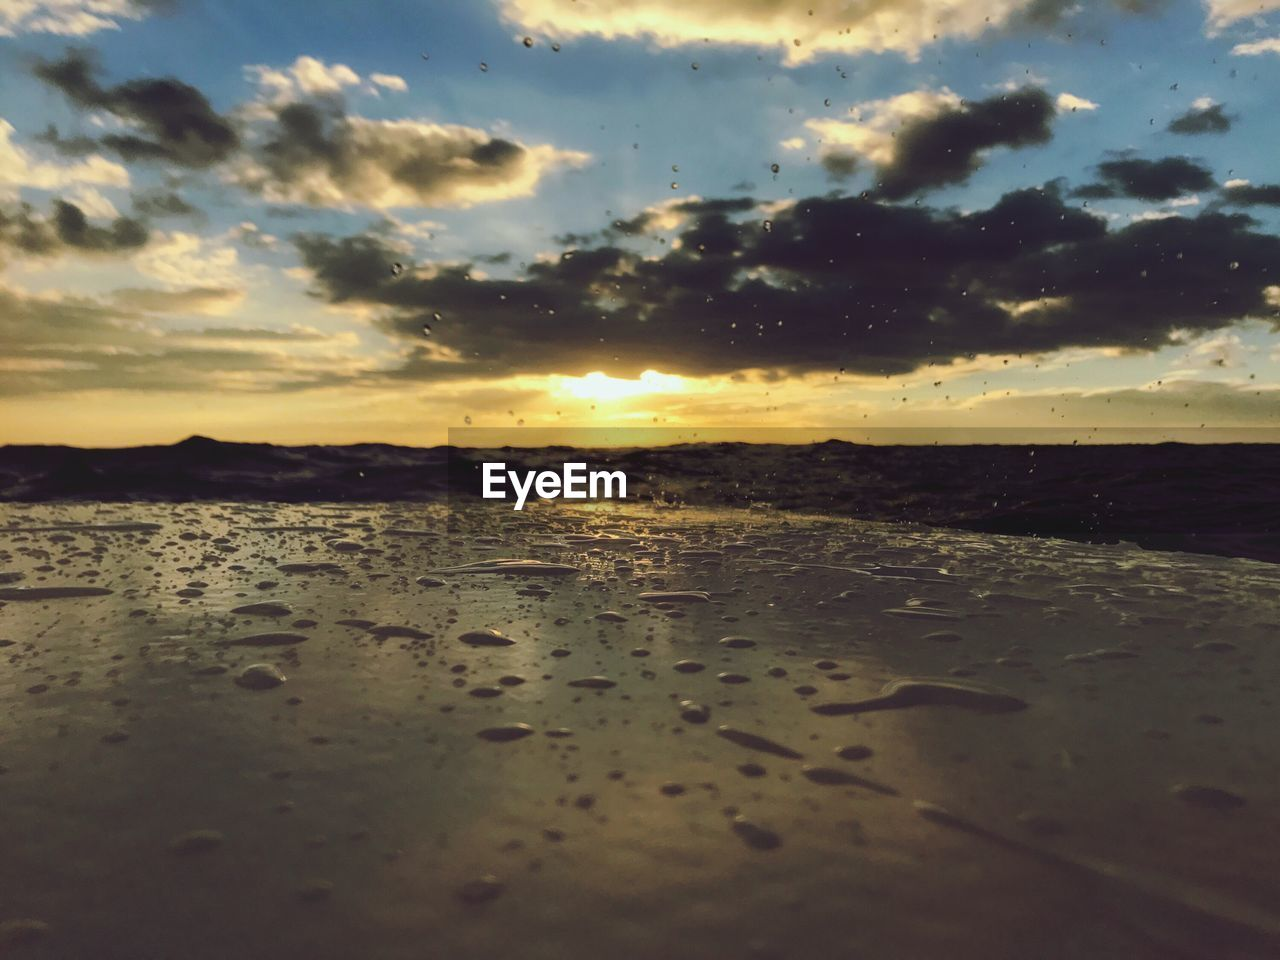 sunset, water, nature, beauty in nature, sky, tranquility, reflection, no people, scenics, wet, tranquil scene, cloud - sky, beach, outdoors, sea, day, close-up